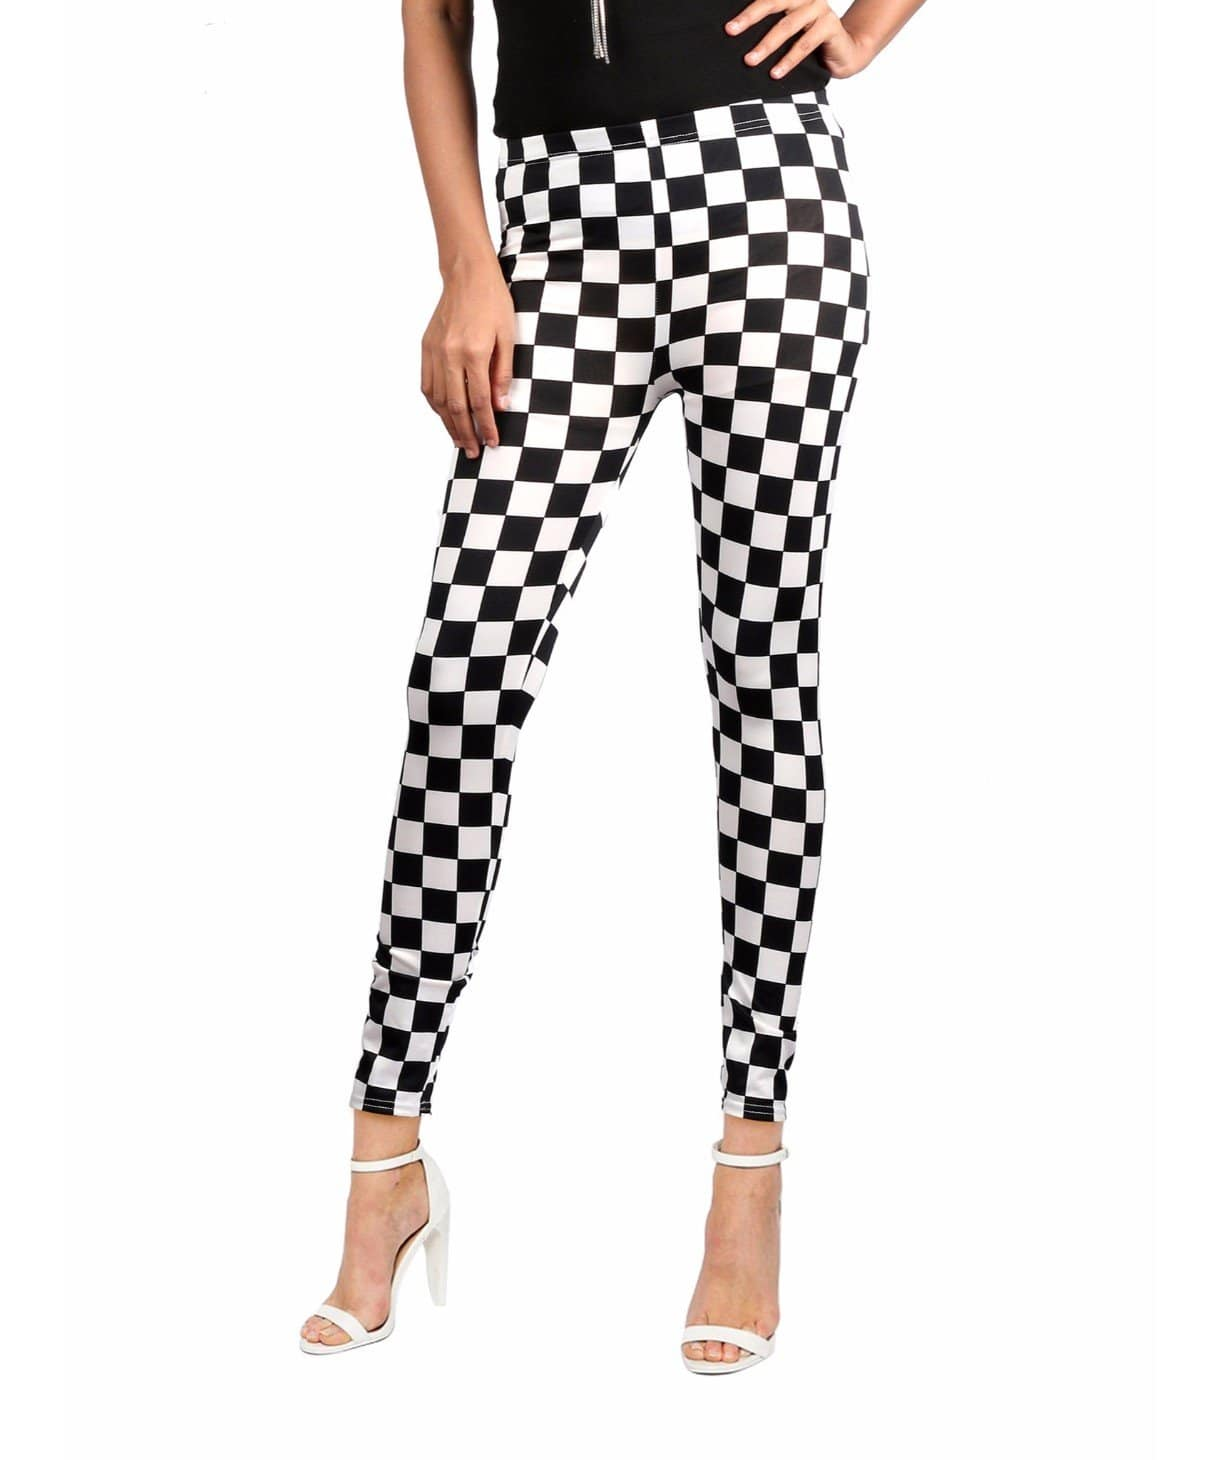 Black & White Checkered Legging Tights